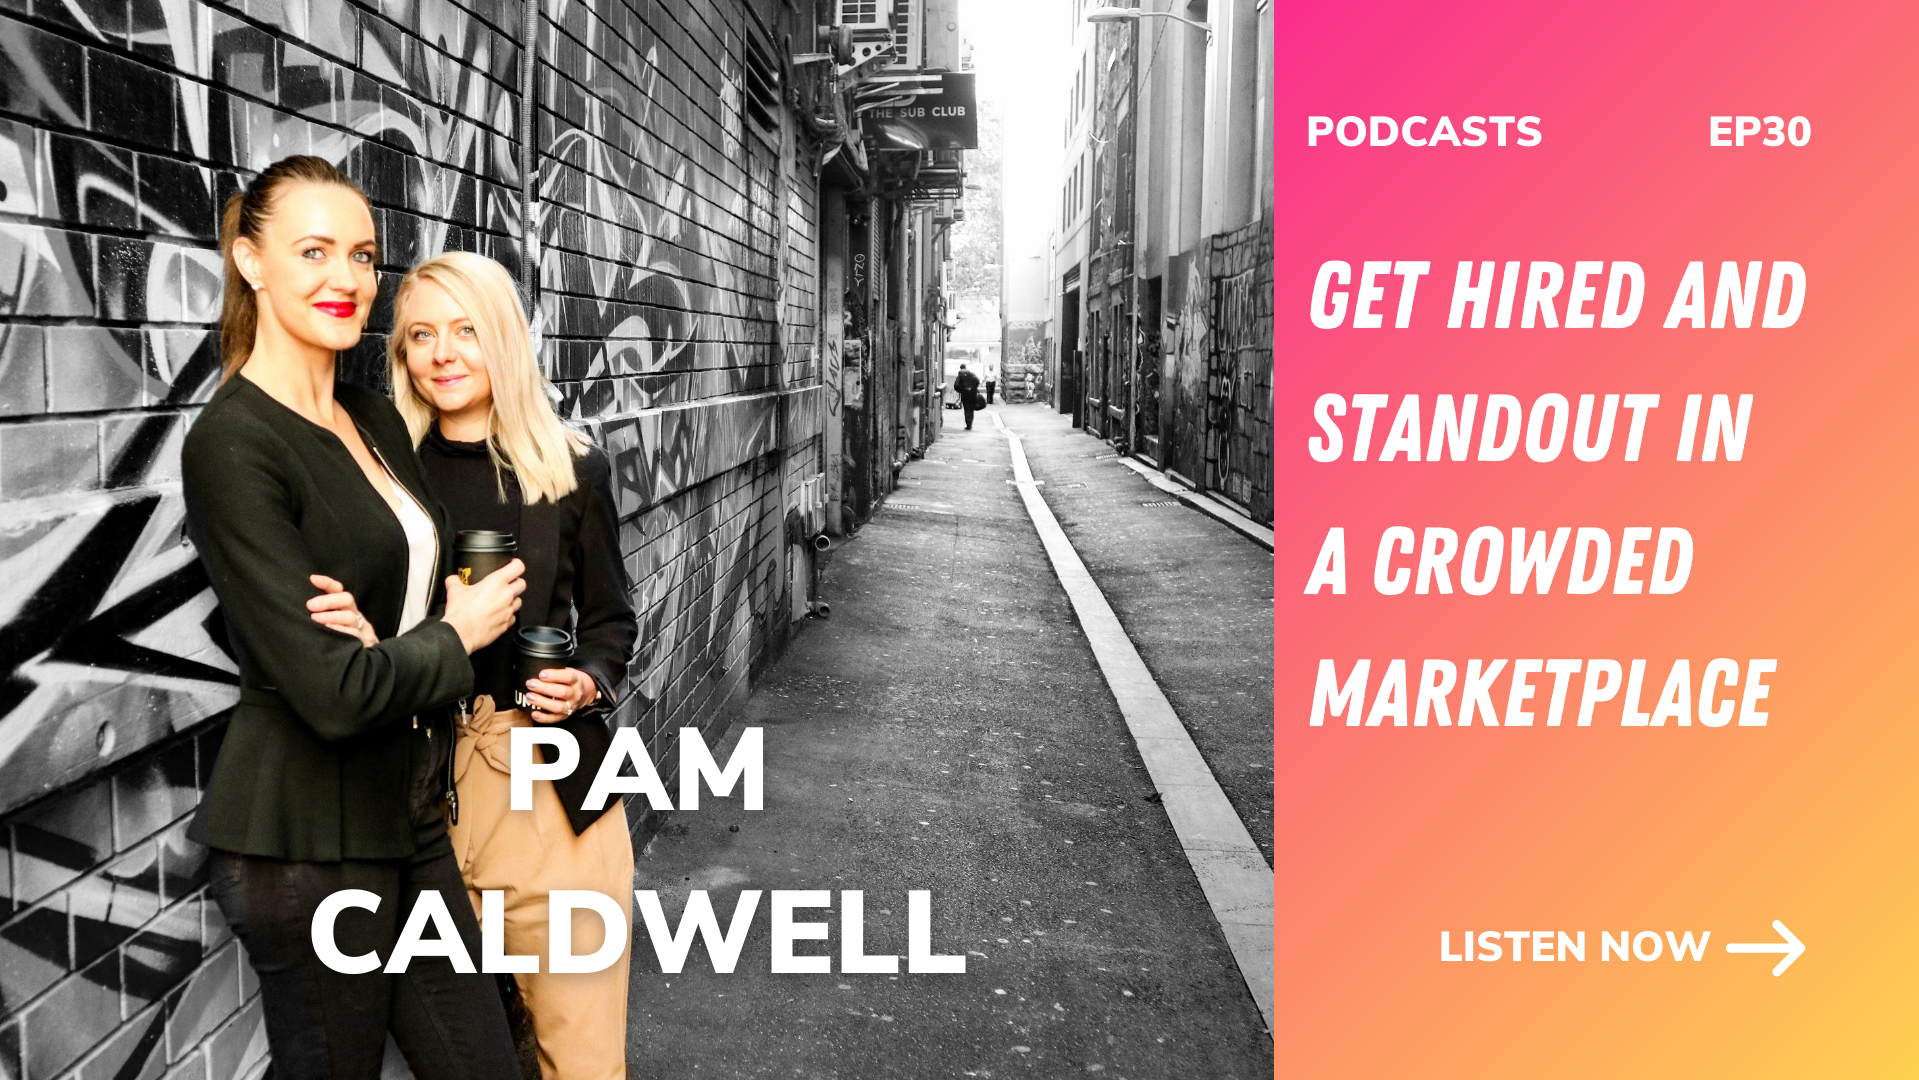 pam caldwell, get hired and standout in a crowded marketplace